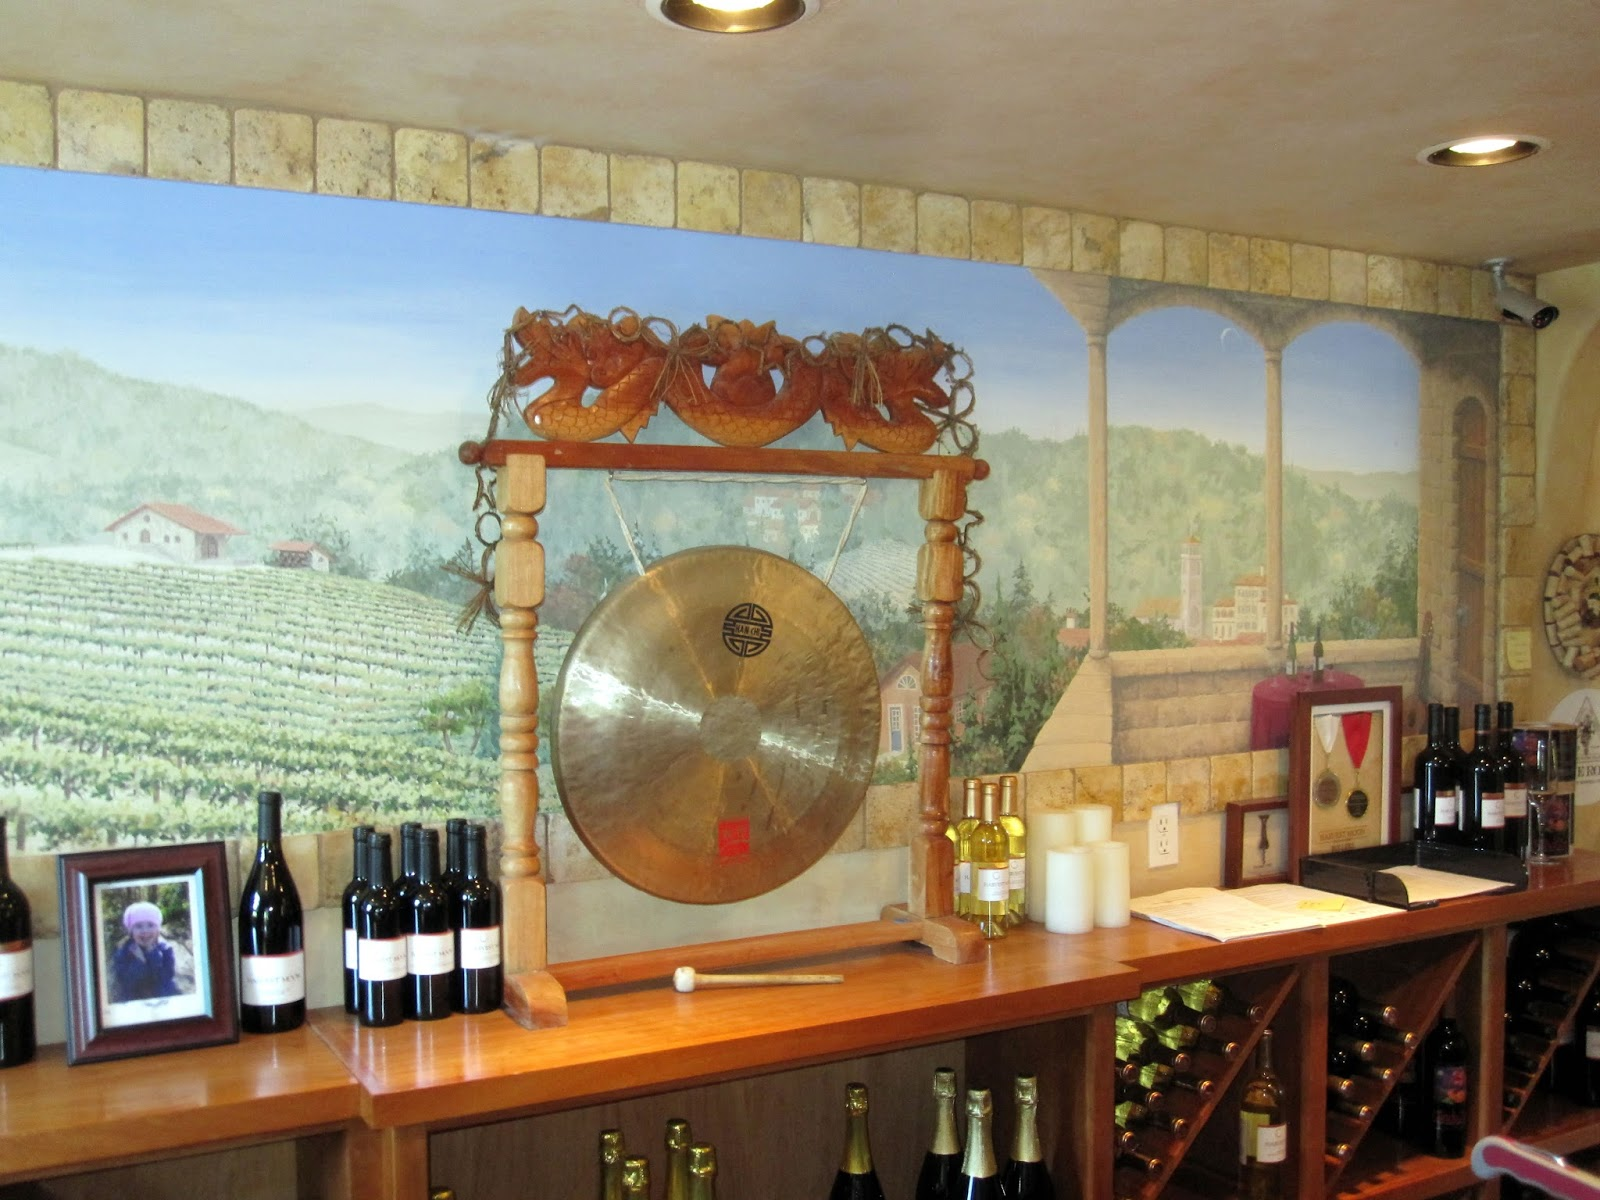 The Harvest Moon Winery